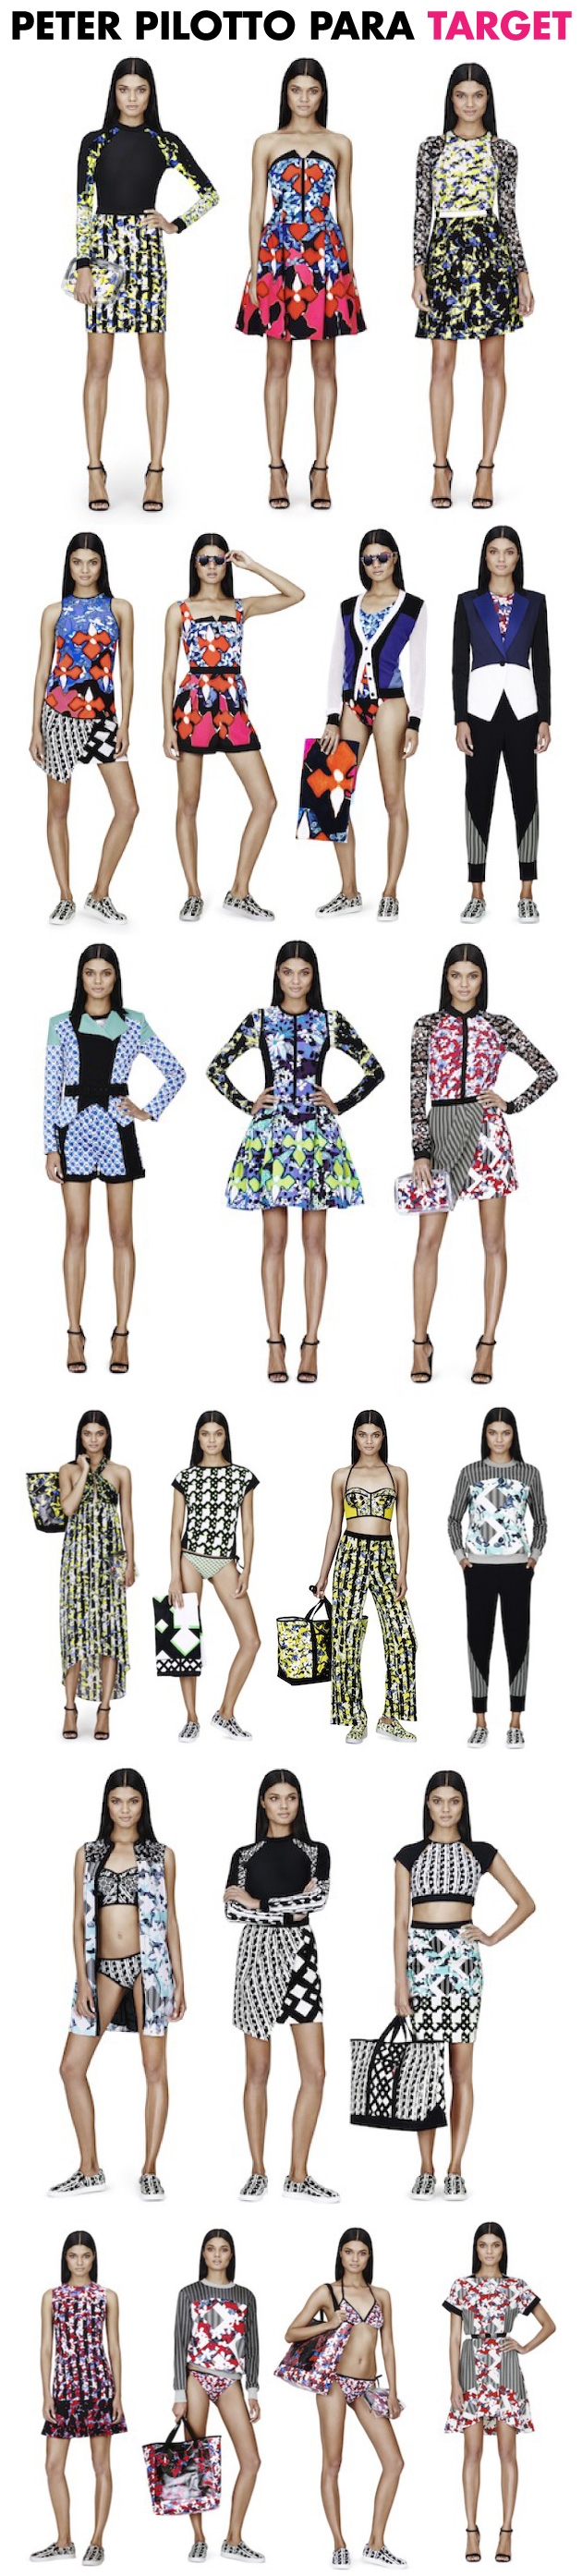 peter-pilotto-para-target-parceria-collaboration-fast-fashion-mix-de-estampas-lookbook-precos-data-de-lancamento-fevereiro-2014-colecao-looks-estamparia-digital